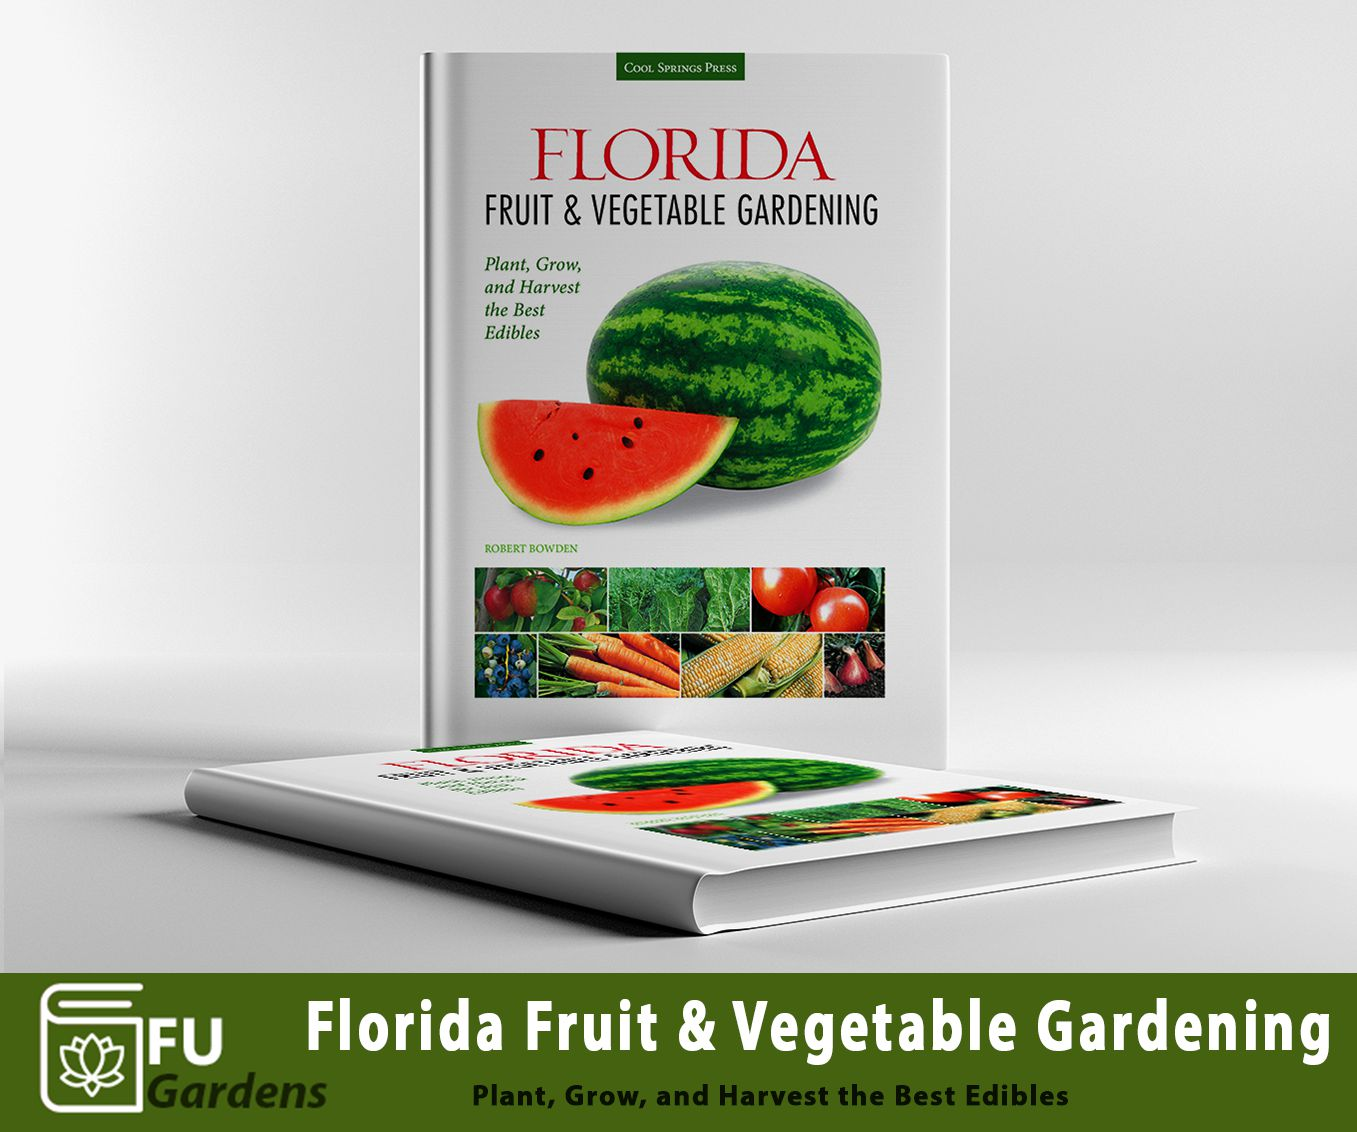 READ BOOK: Florida Fruit & Vegetable Gardening: Plant, Grow, and Harvest the Best Edibles (Fruit & Vegetable Gardening Guides) by Robert Bowden (PDF)